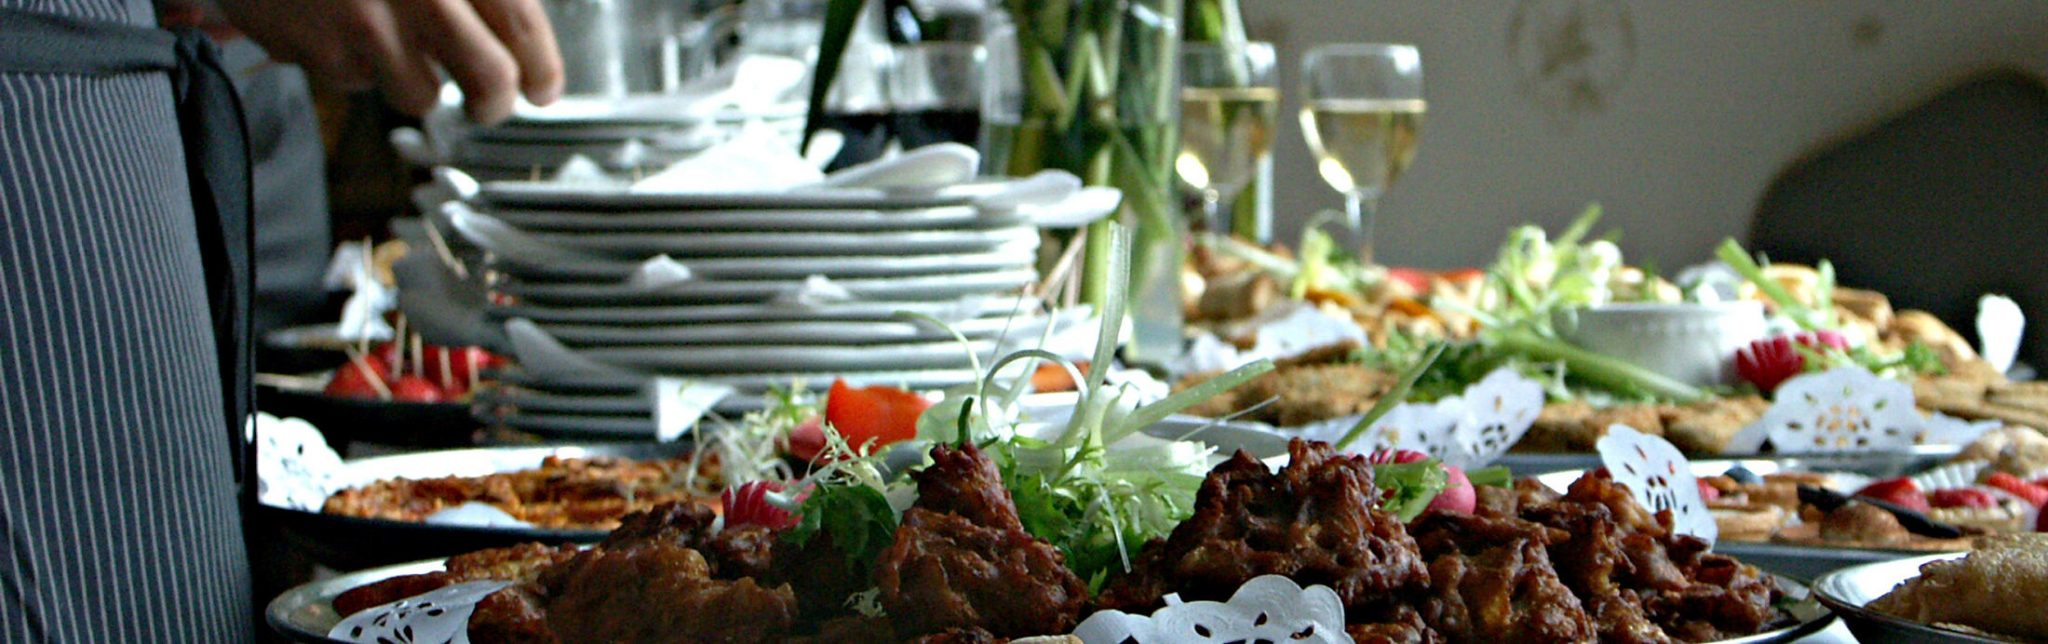 Dakshas Corporate Catering